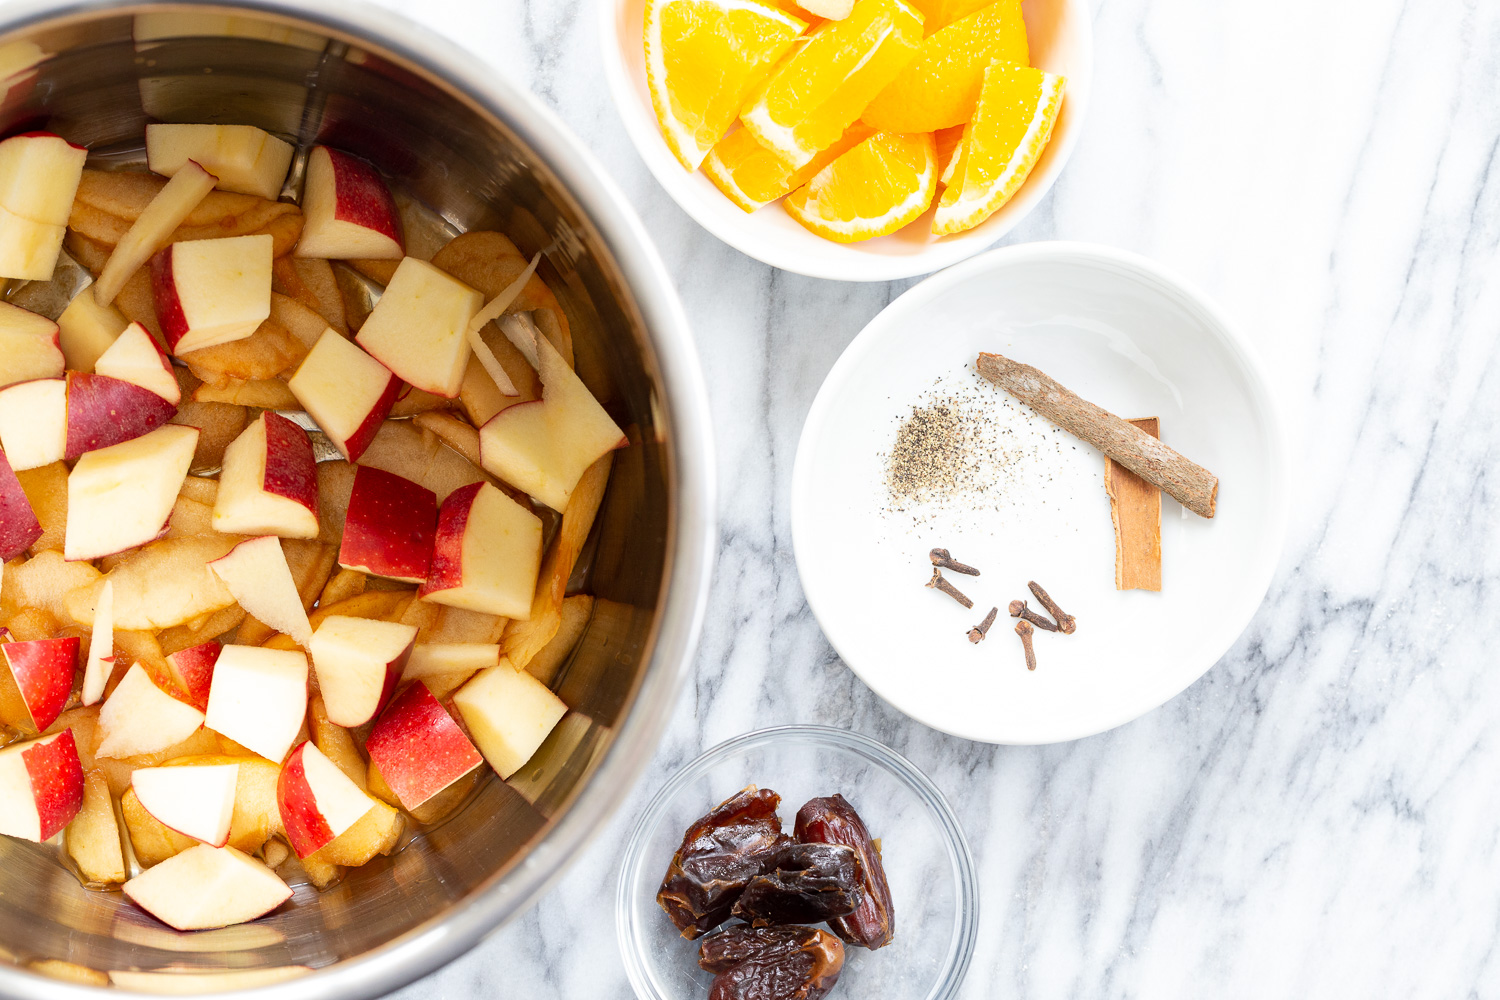 Ingredients for Instant Pot Apple Cider in Bowls